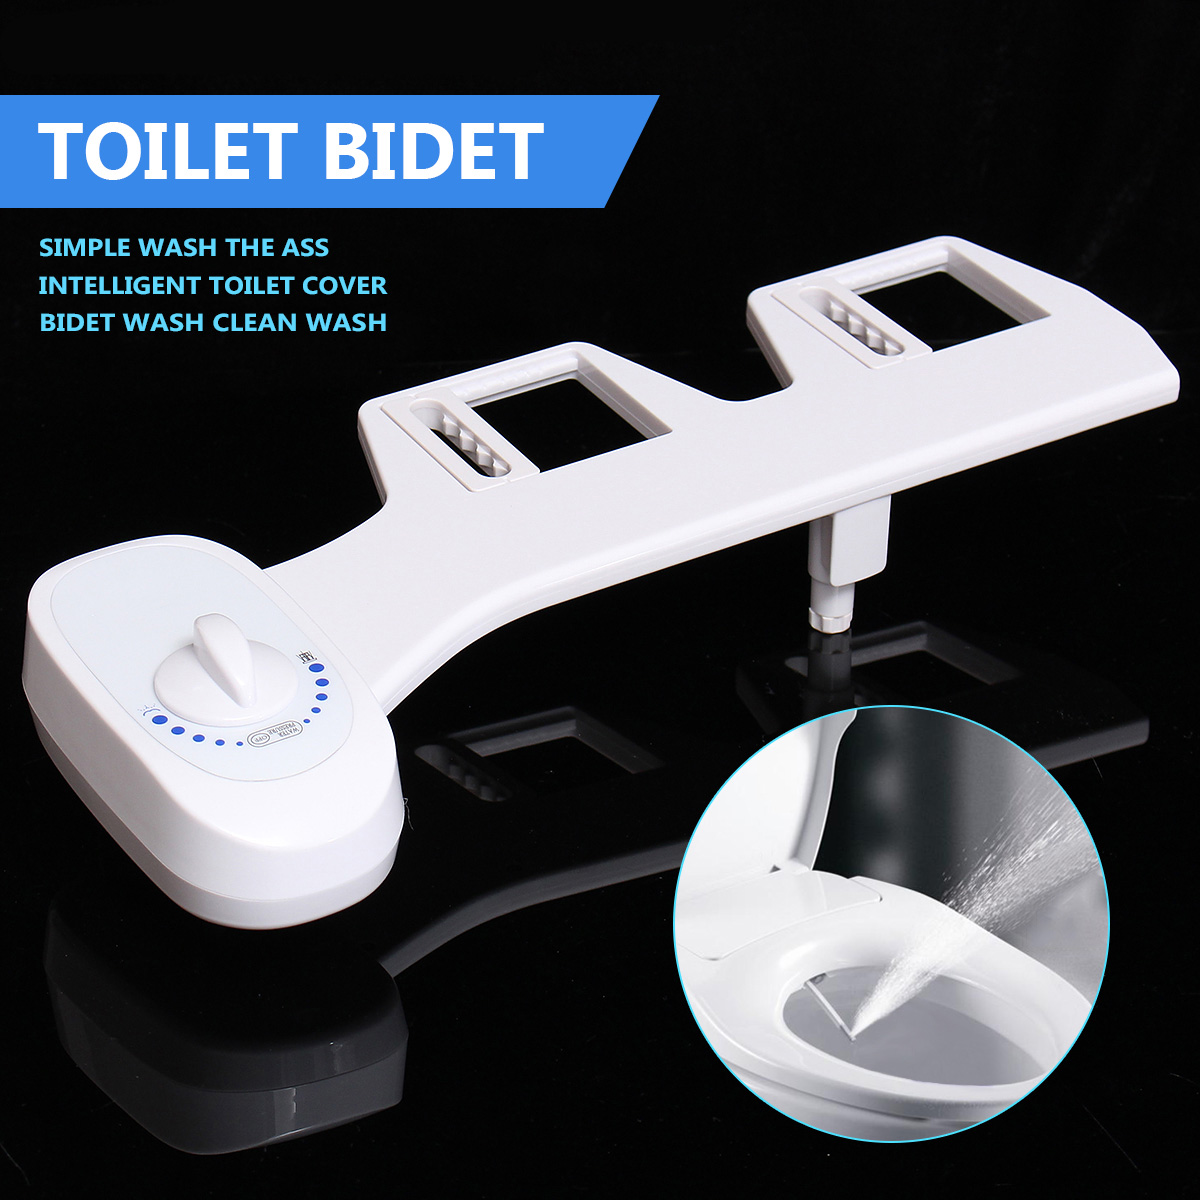 Xueqin 2 Sizes Single Nozzle Bathroom Toilet Seat Bidet Sprayer Ass Wash Clean Cold Water Non-Electric Toilet Sprayer Nozzle